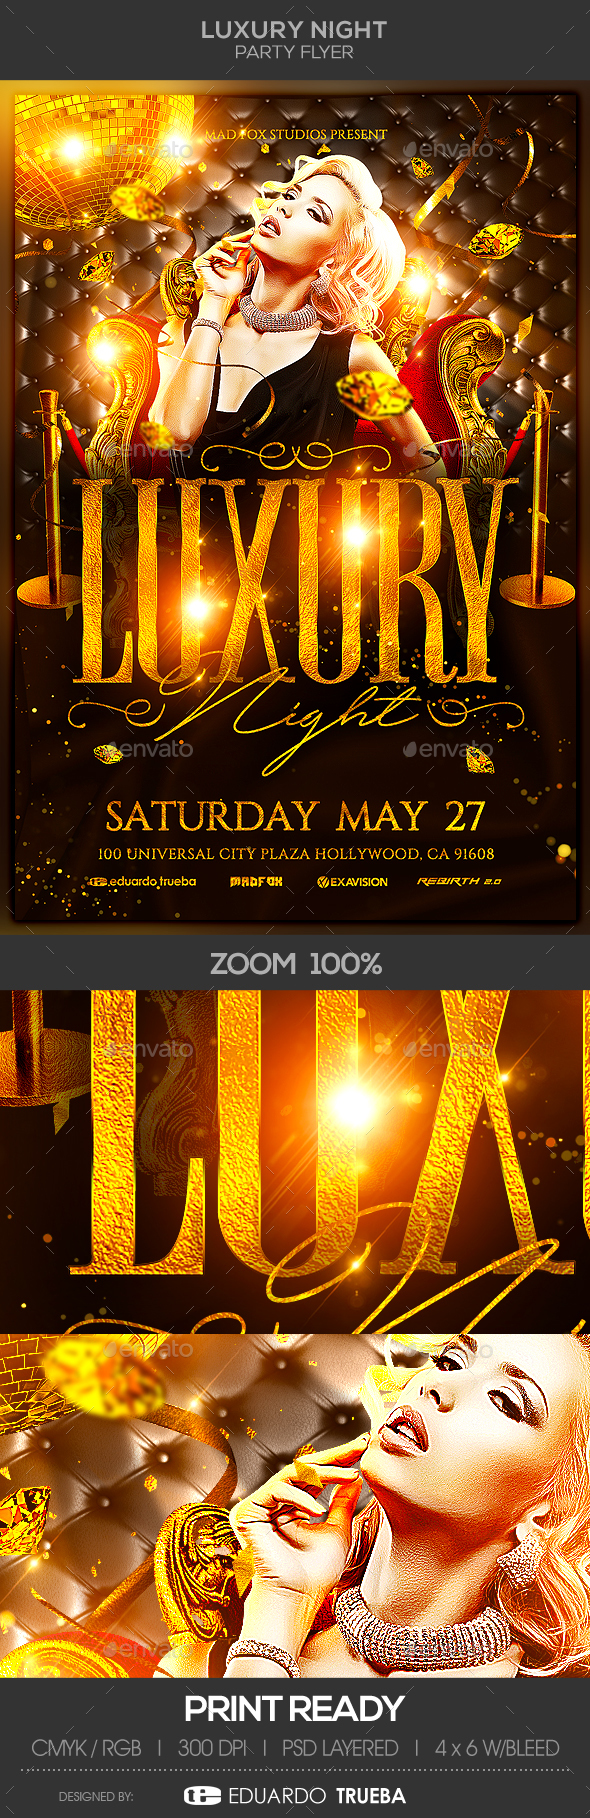 Luxury Night Party Flyer - Events Flyers